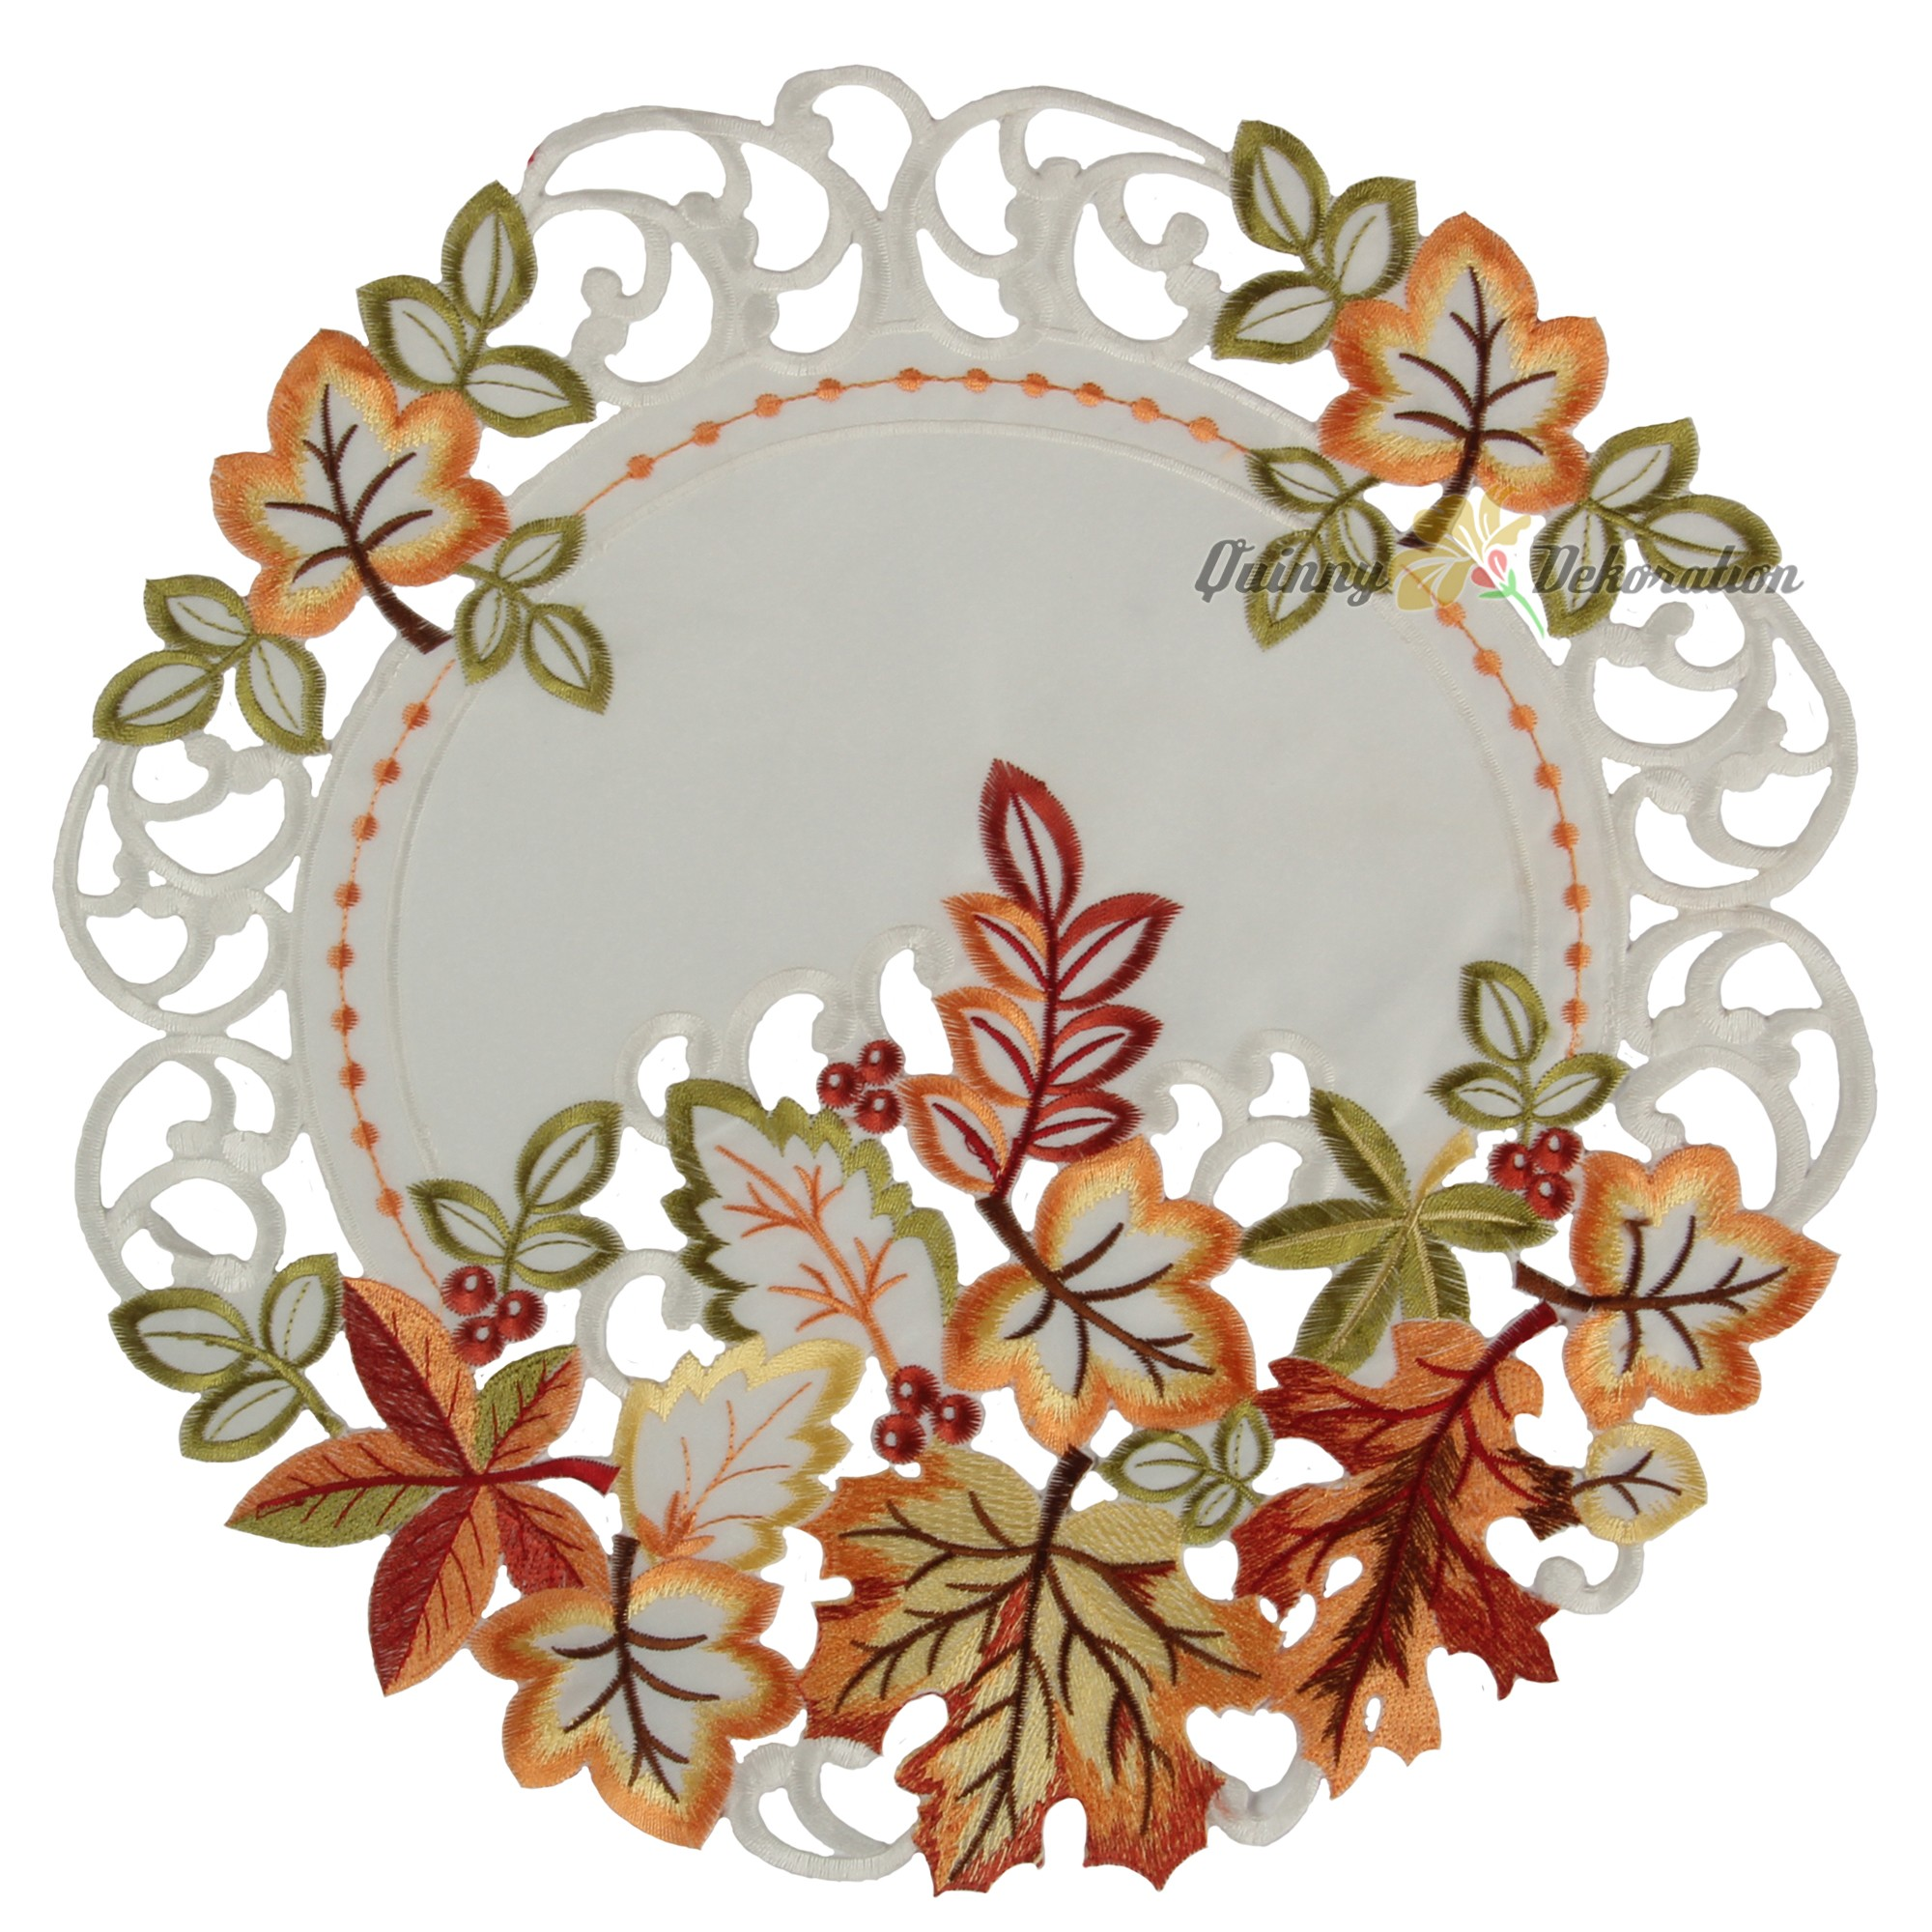 Autumn fall tablecloth table runner doily white green red